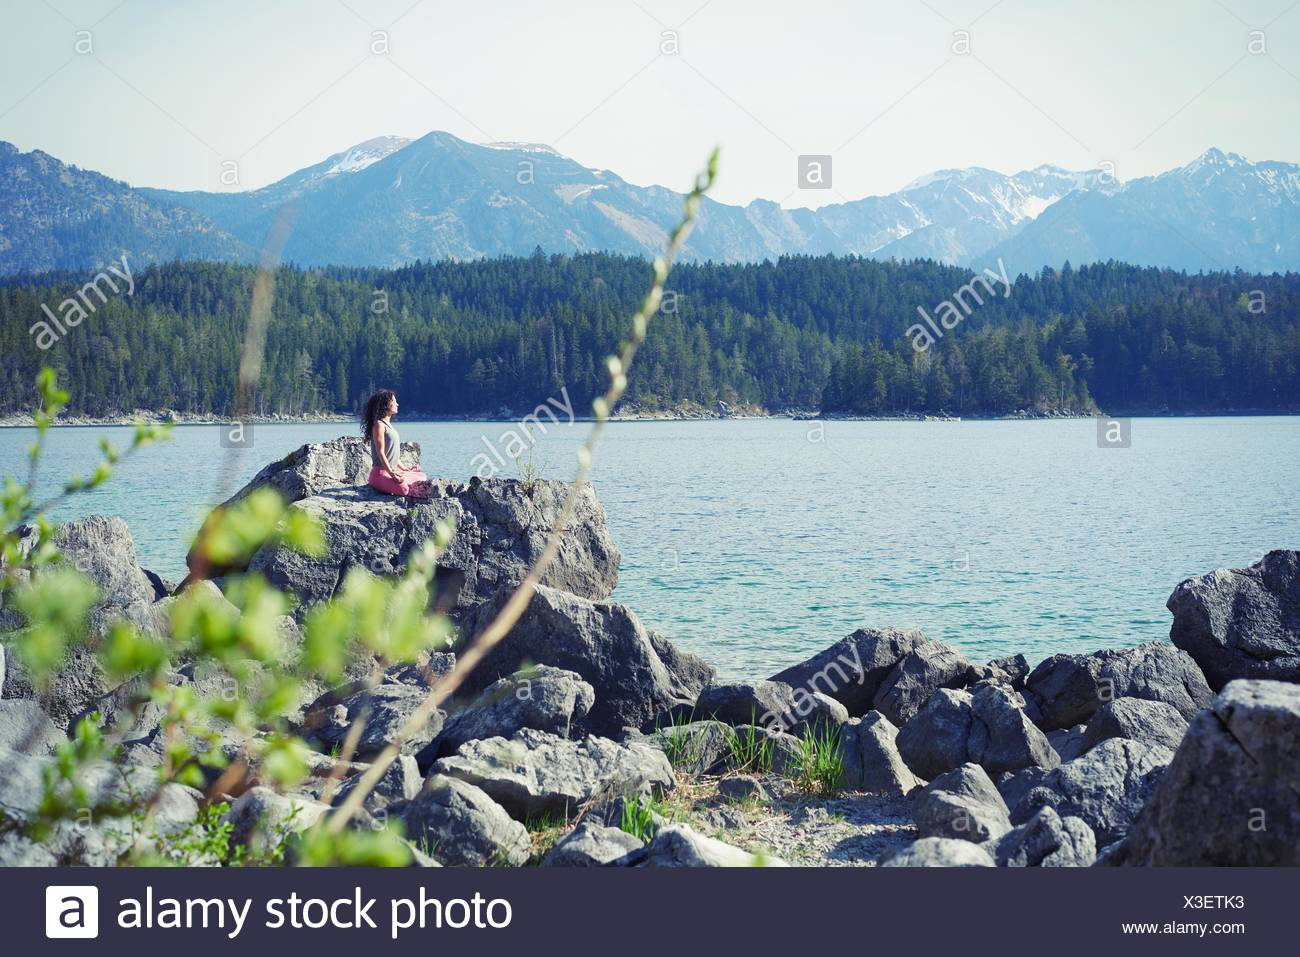 Man, sitting on rock, in yoga position Photo Stock